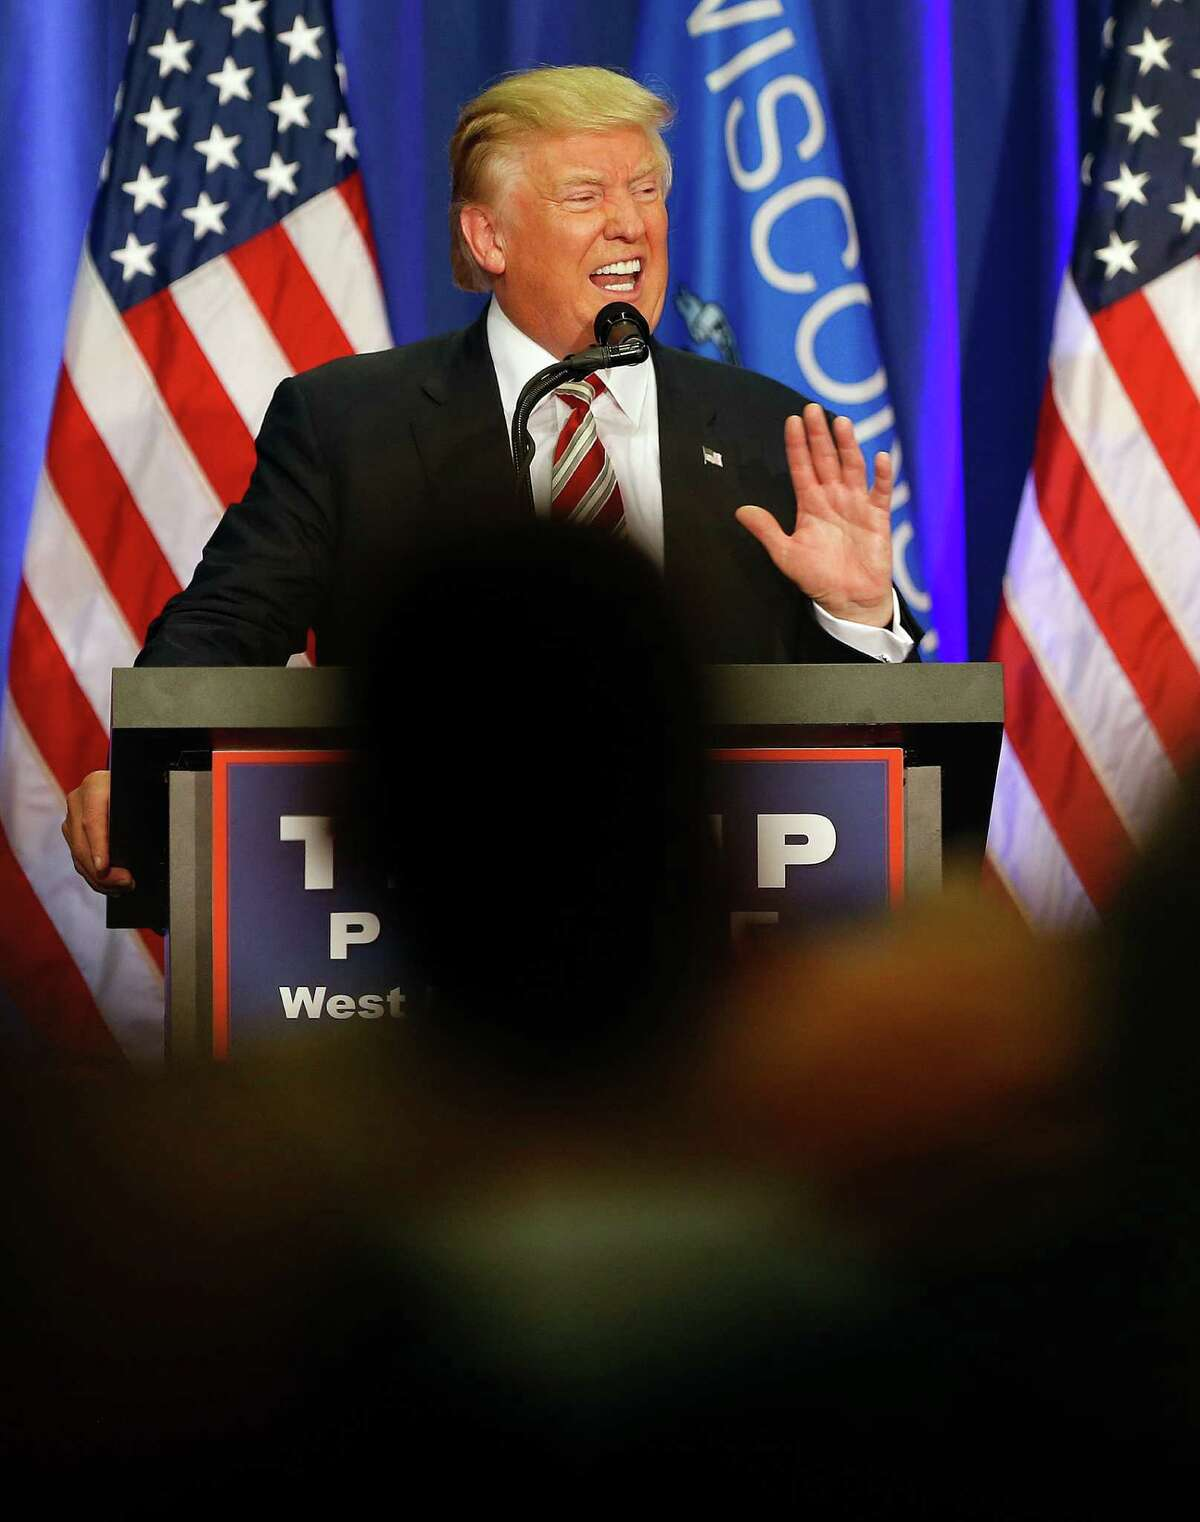 Republican presidential candidate Donald Trump speaks at a campaign rally in West Bend, Wisconsin on Aug. 16. His candidacy is testing Americans' friendships with one another.